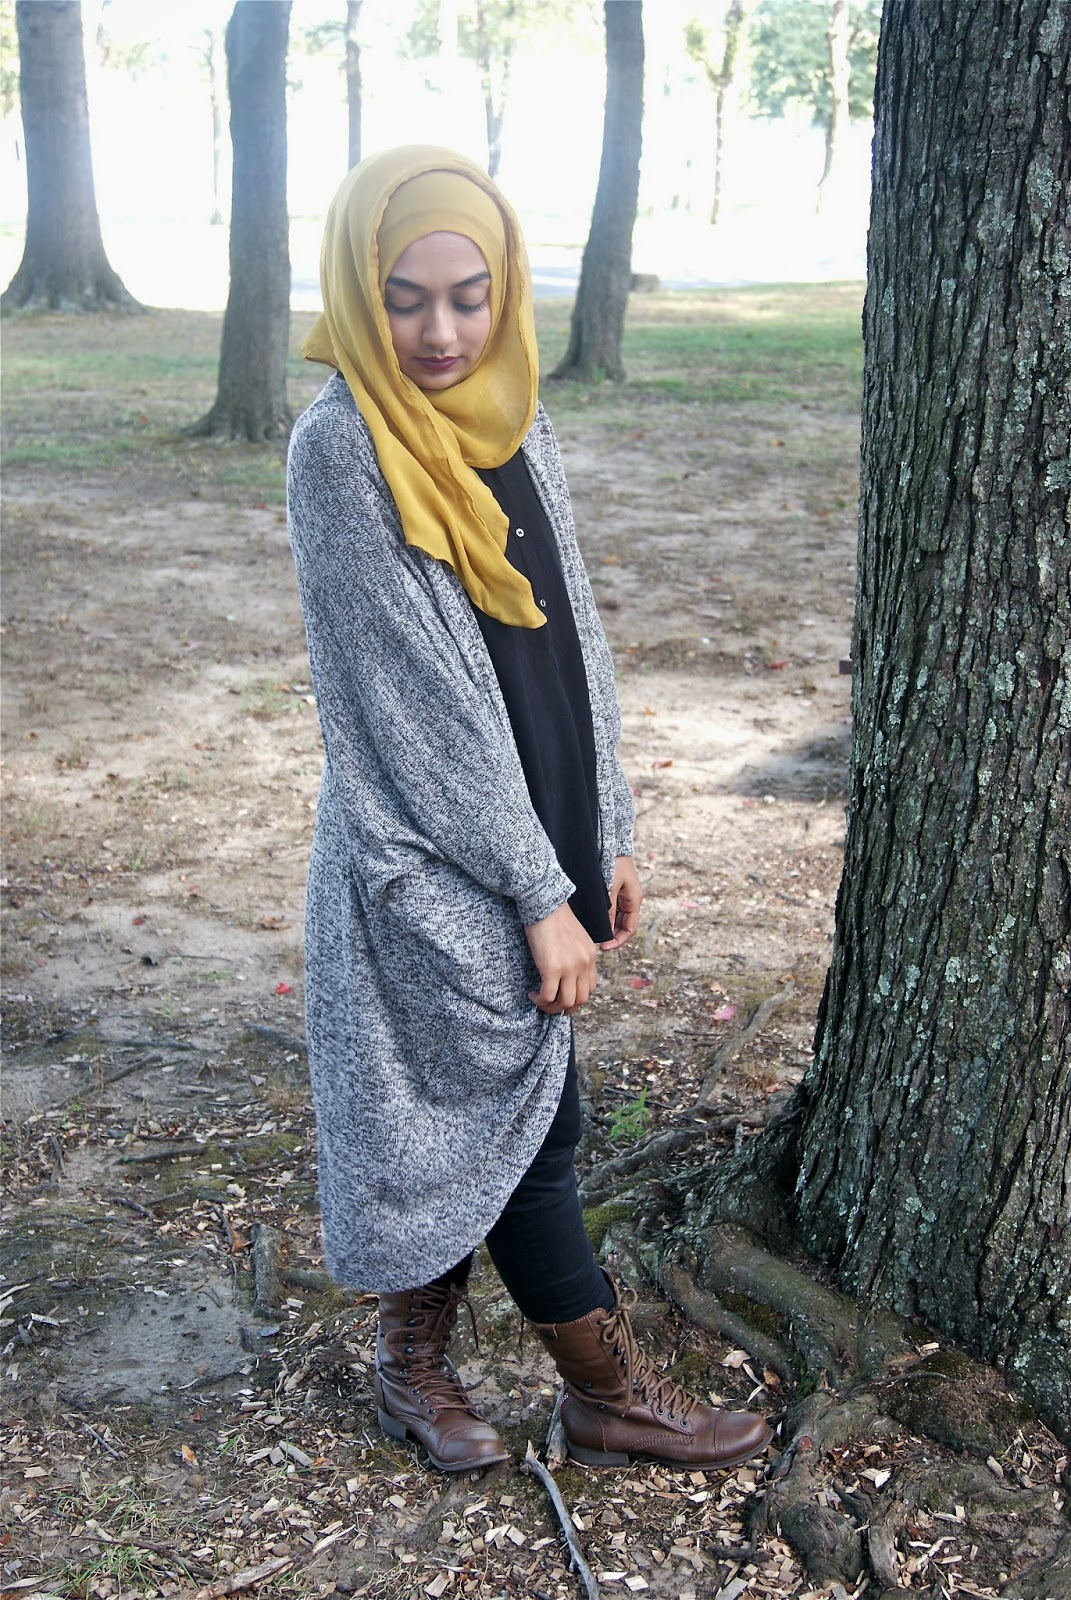 0d46929588ab Cape Sweater & Jeans: Forever 21 // Shirt: H&M // Shoes: Spring // Scarf:  Random